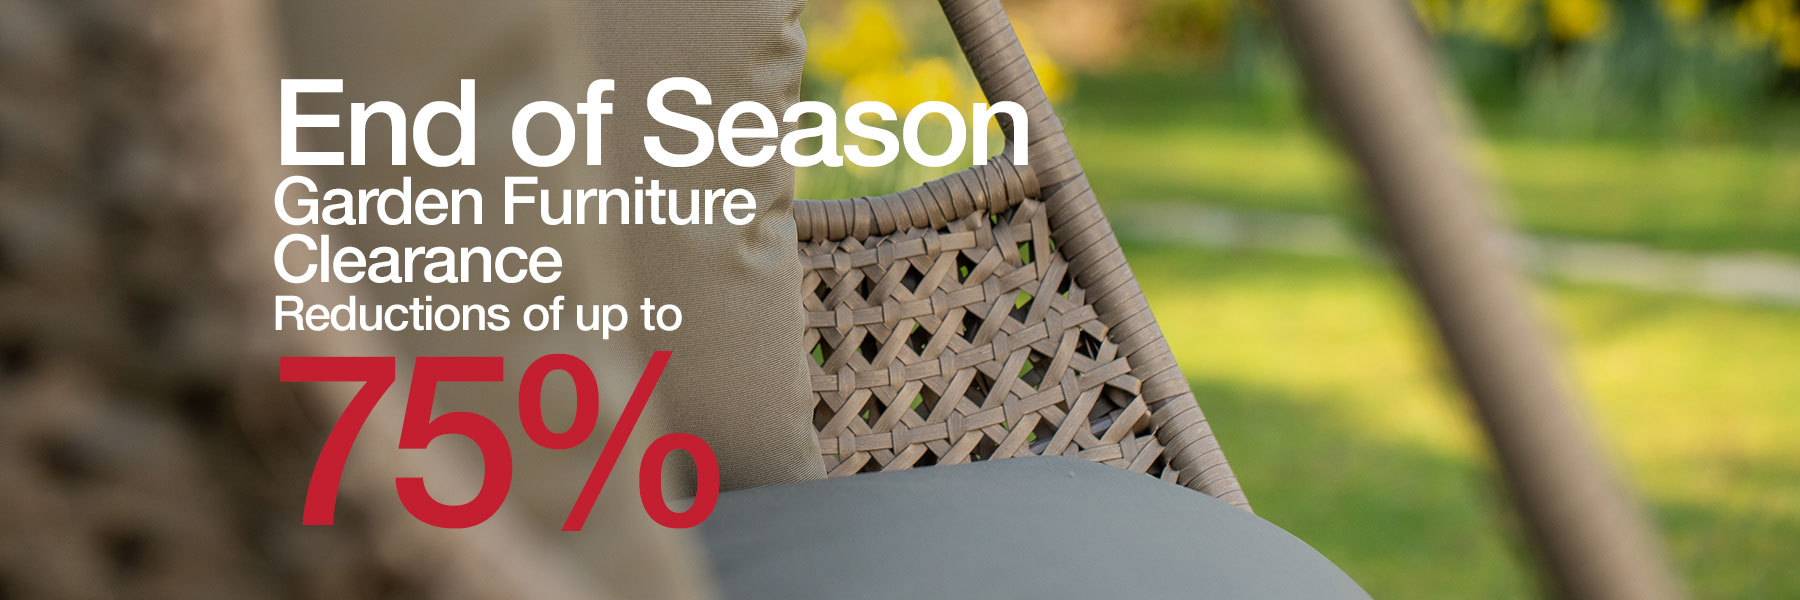 End of Season Sale Save up to 75% off Garden Furniture